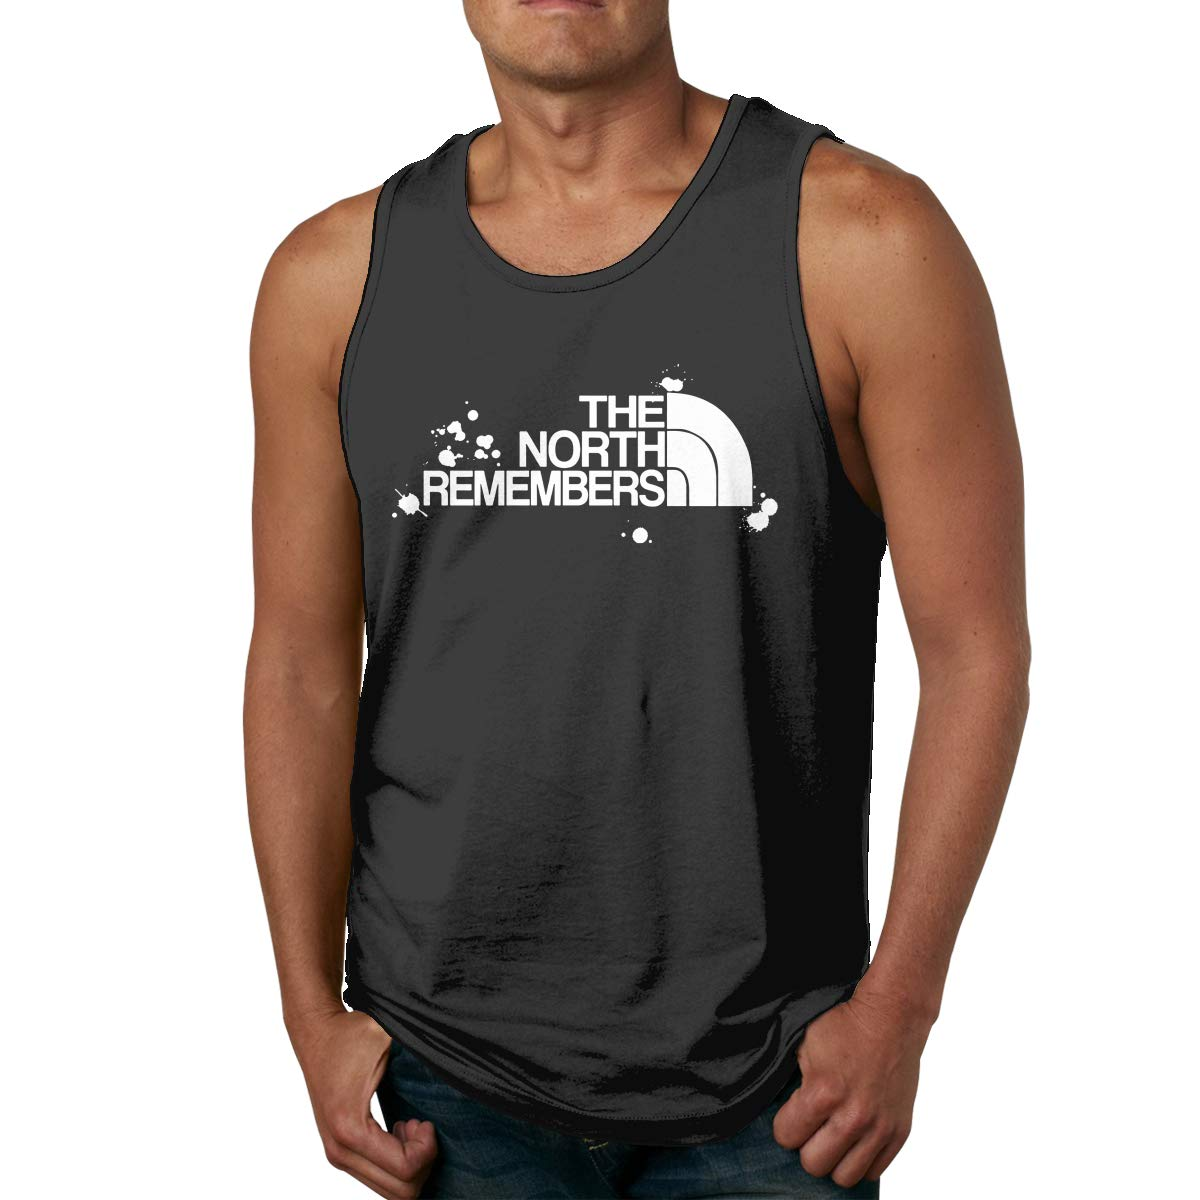 Mens Tank Tops The North Remembers Splash Shirts Summer Funny Tees Muscle T Shirt Top